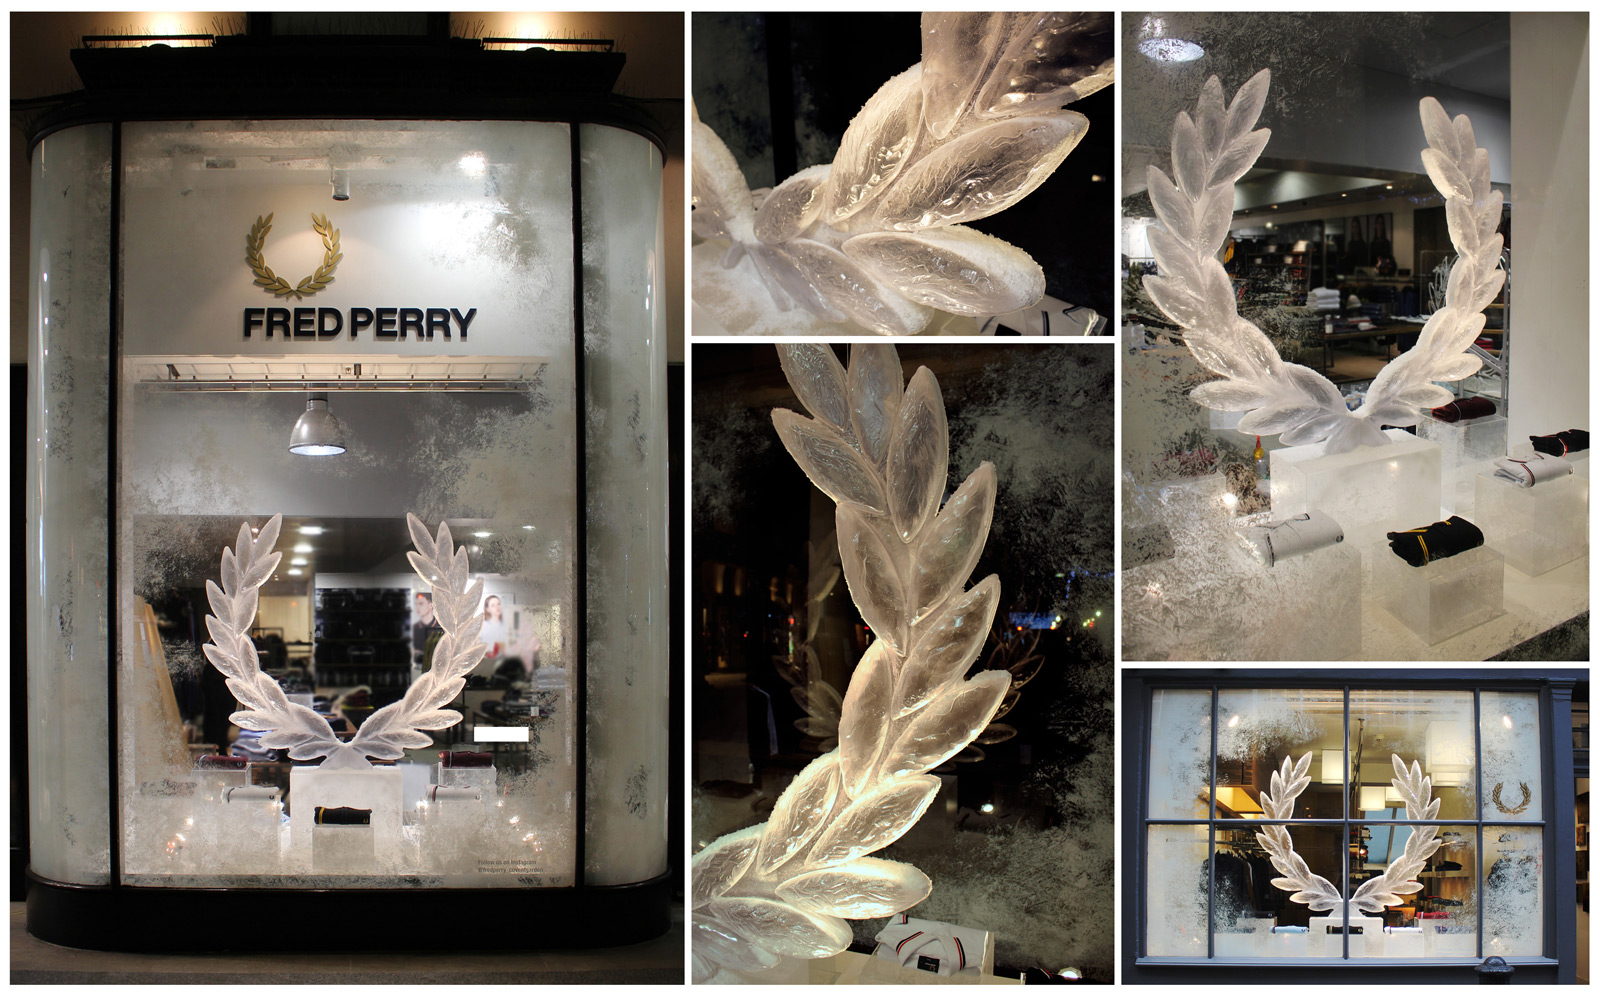 Fred Perry decorated the window display for Christmas with their iced logo, and a steamy window, looking mystic.